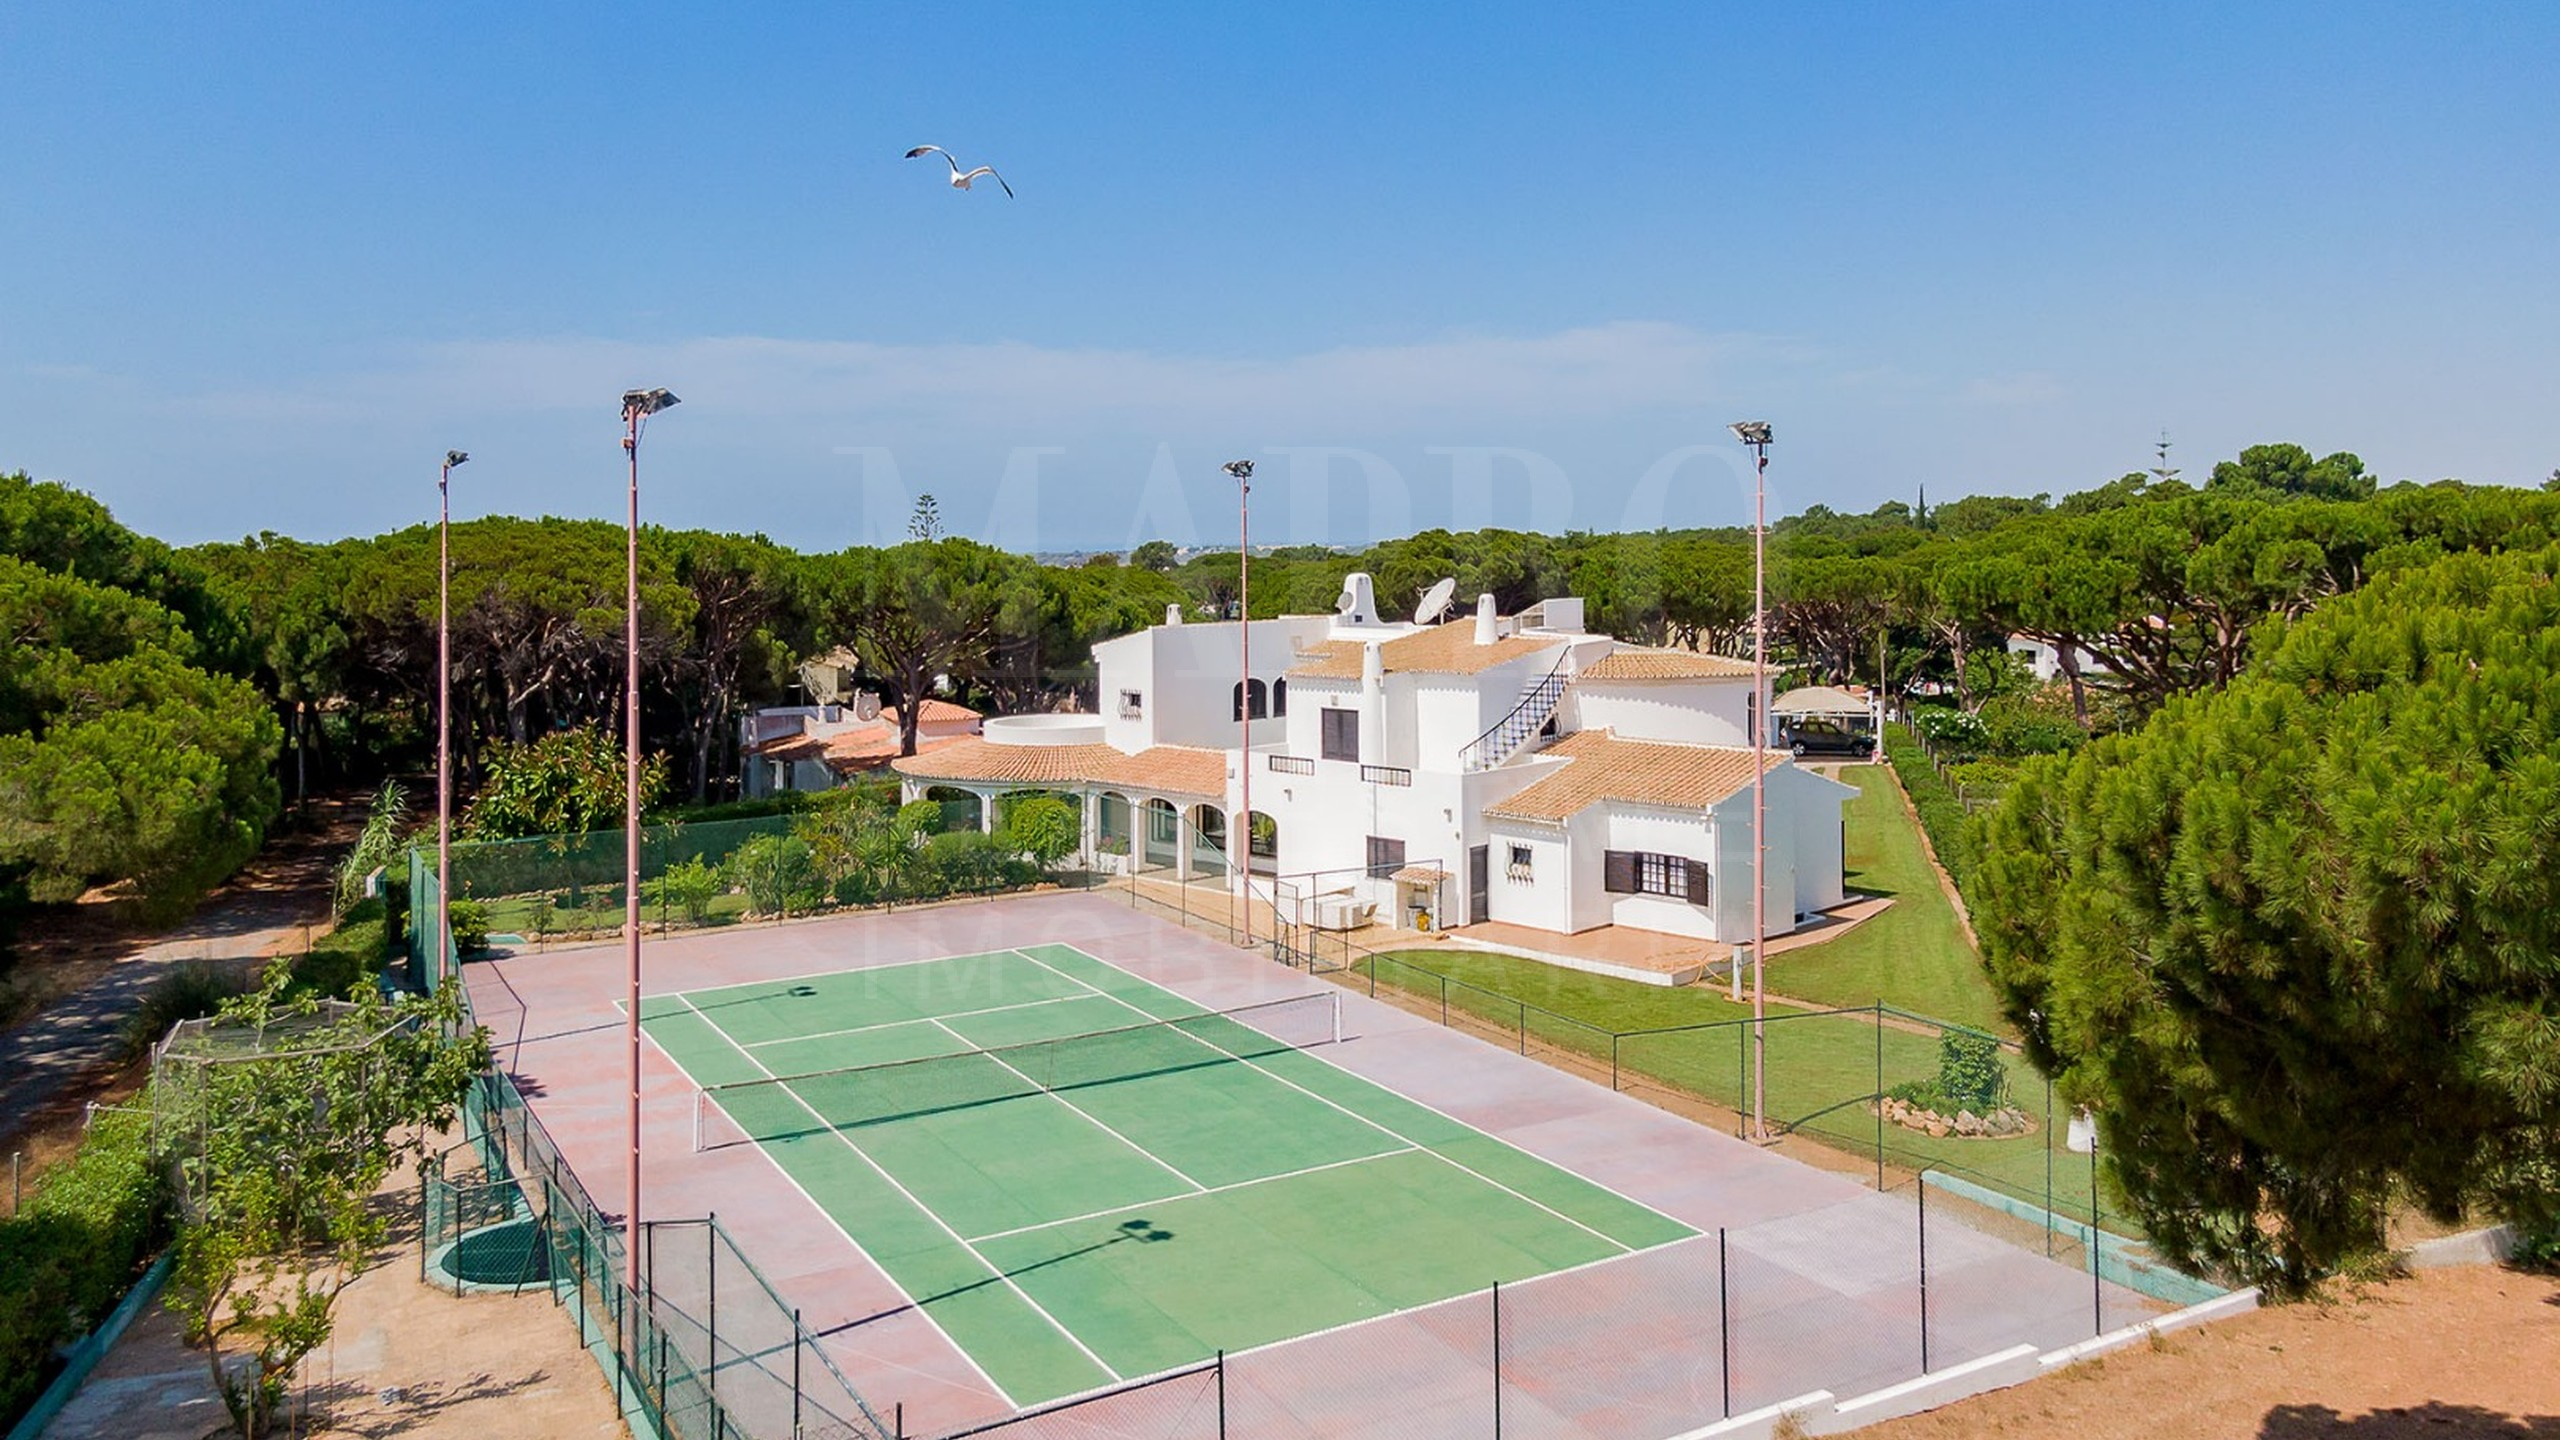 Tennis court close to the villa